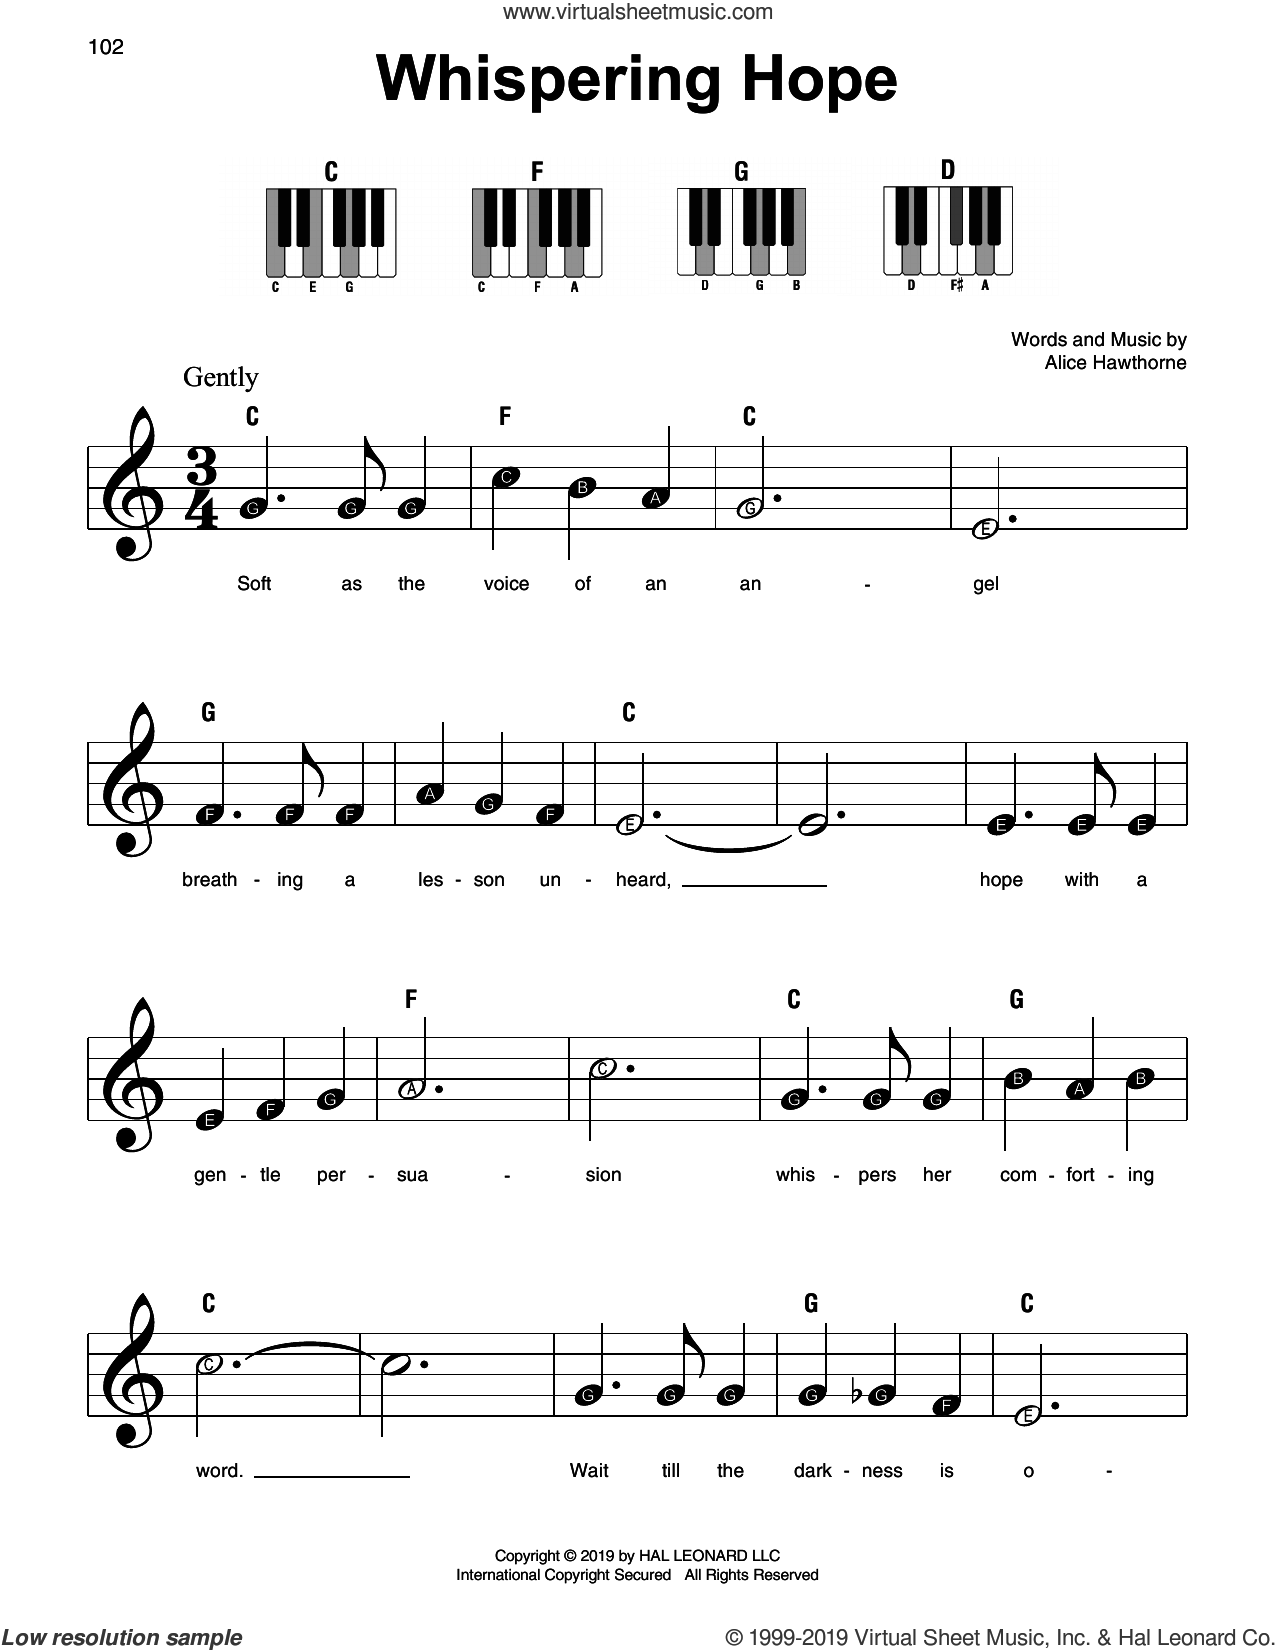 Whispering Hope sheet music for piano solo by Alice Hawthorne, beginner skill level